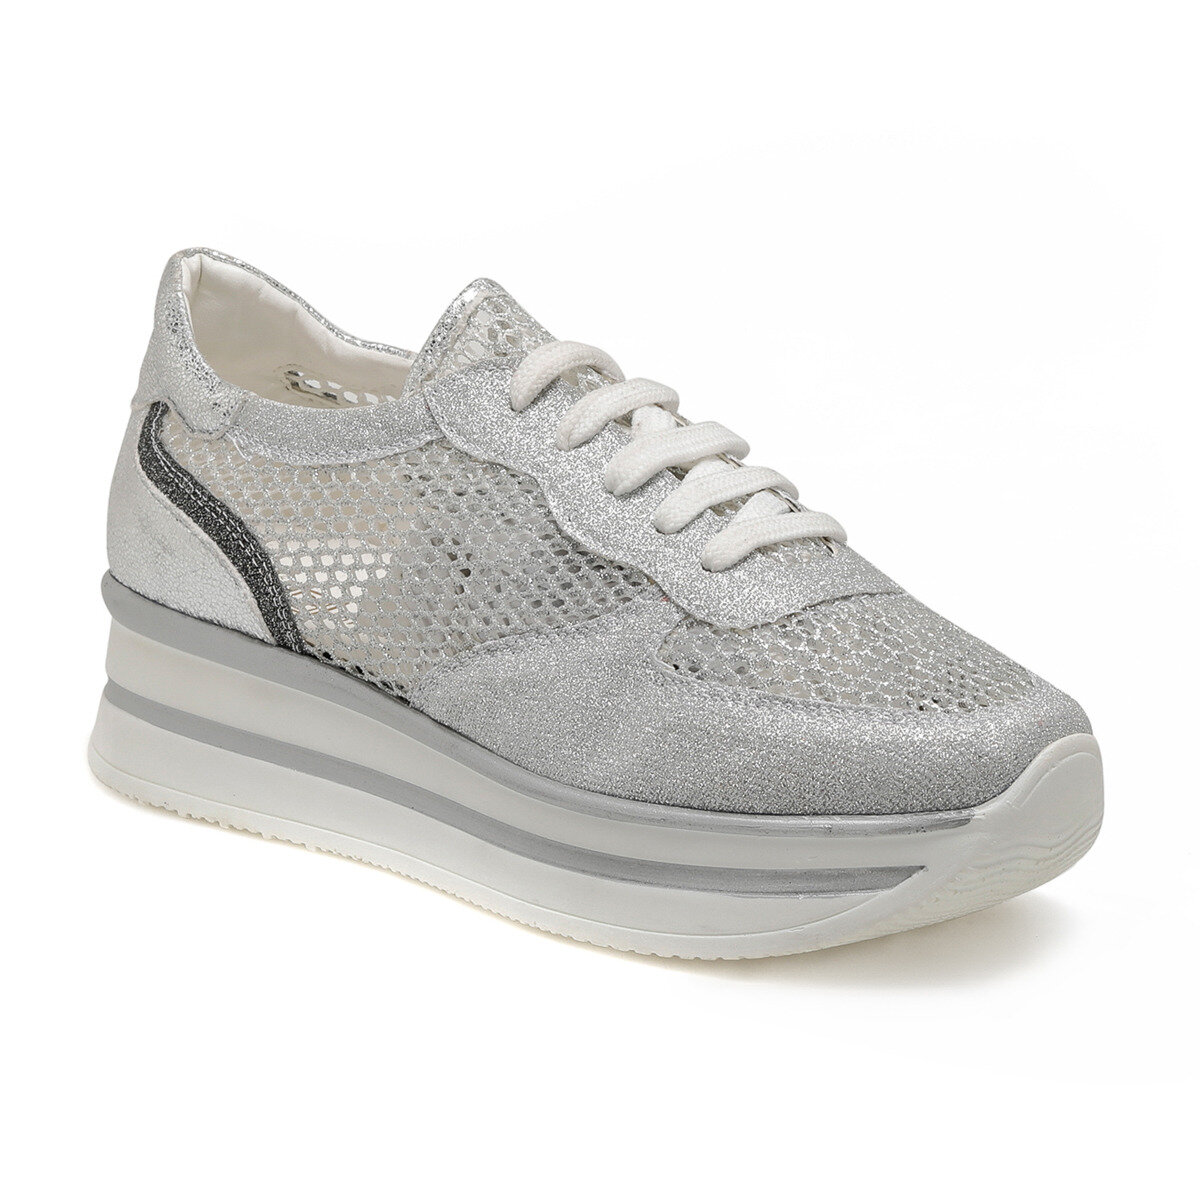 FLO 19S-003 Silver Women 'S Sneaker Shoes BUTIGO